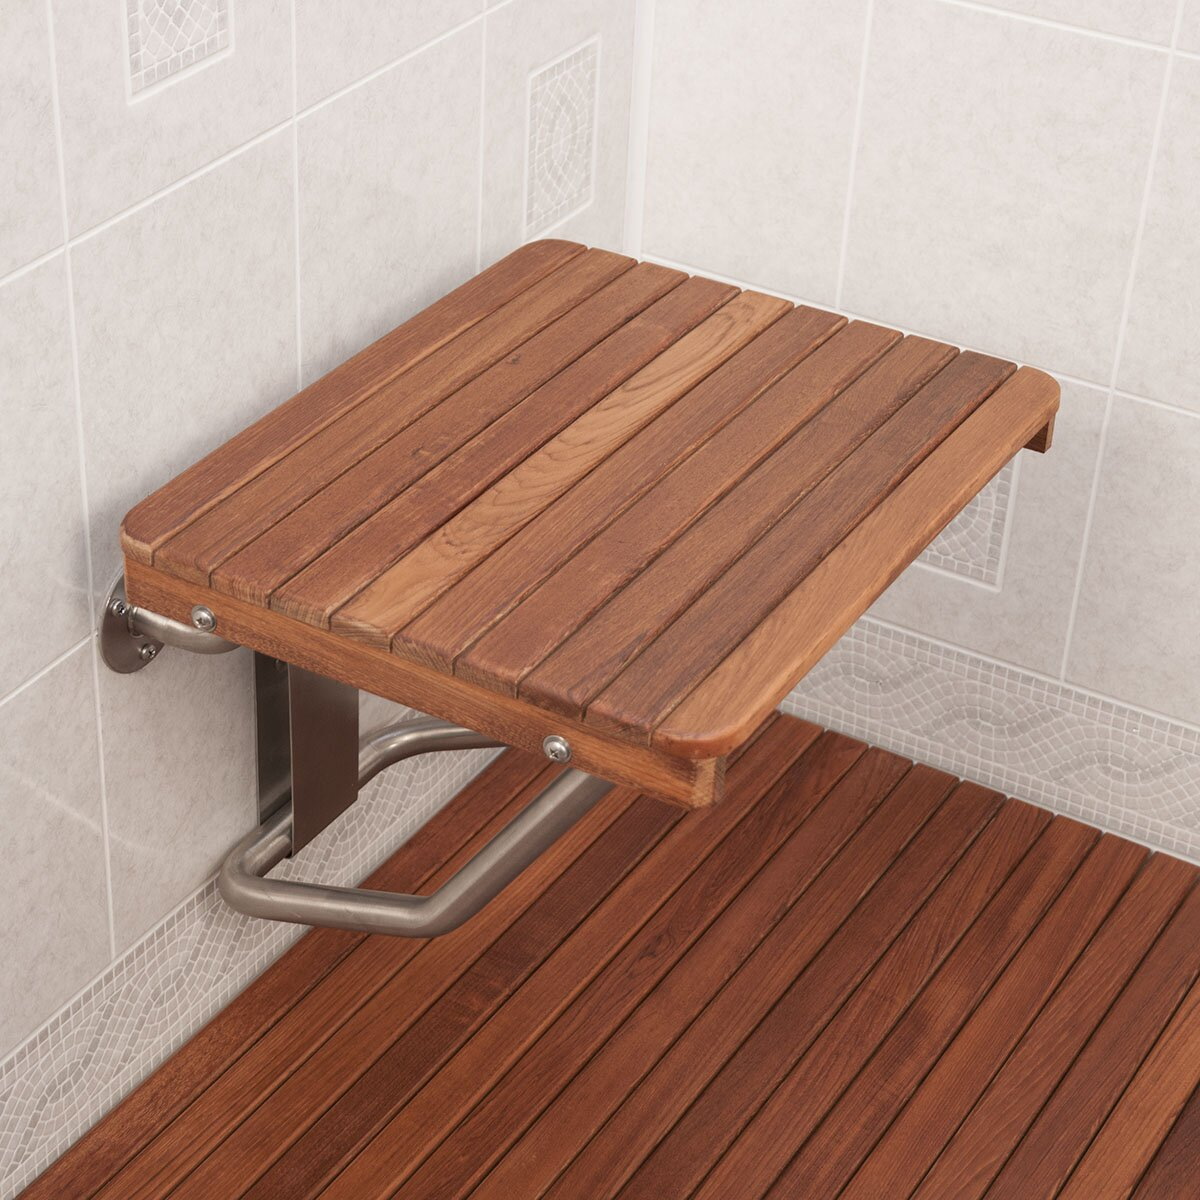 Teakworks4u Teak Shower Transfer Bench Seat Reviews Wayfair